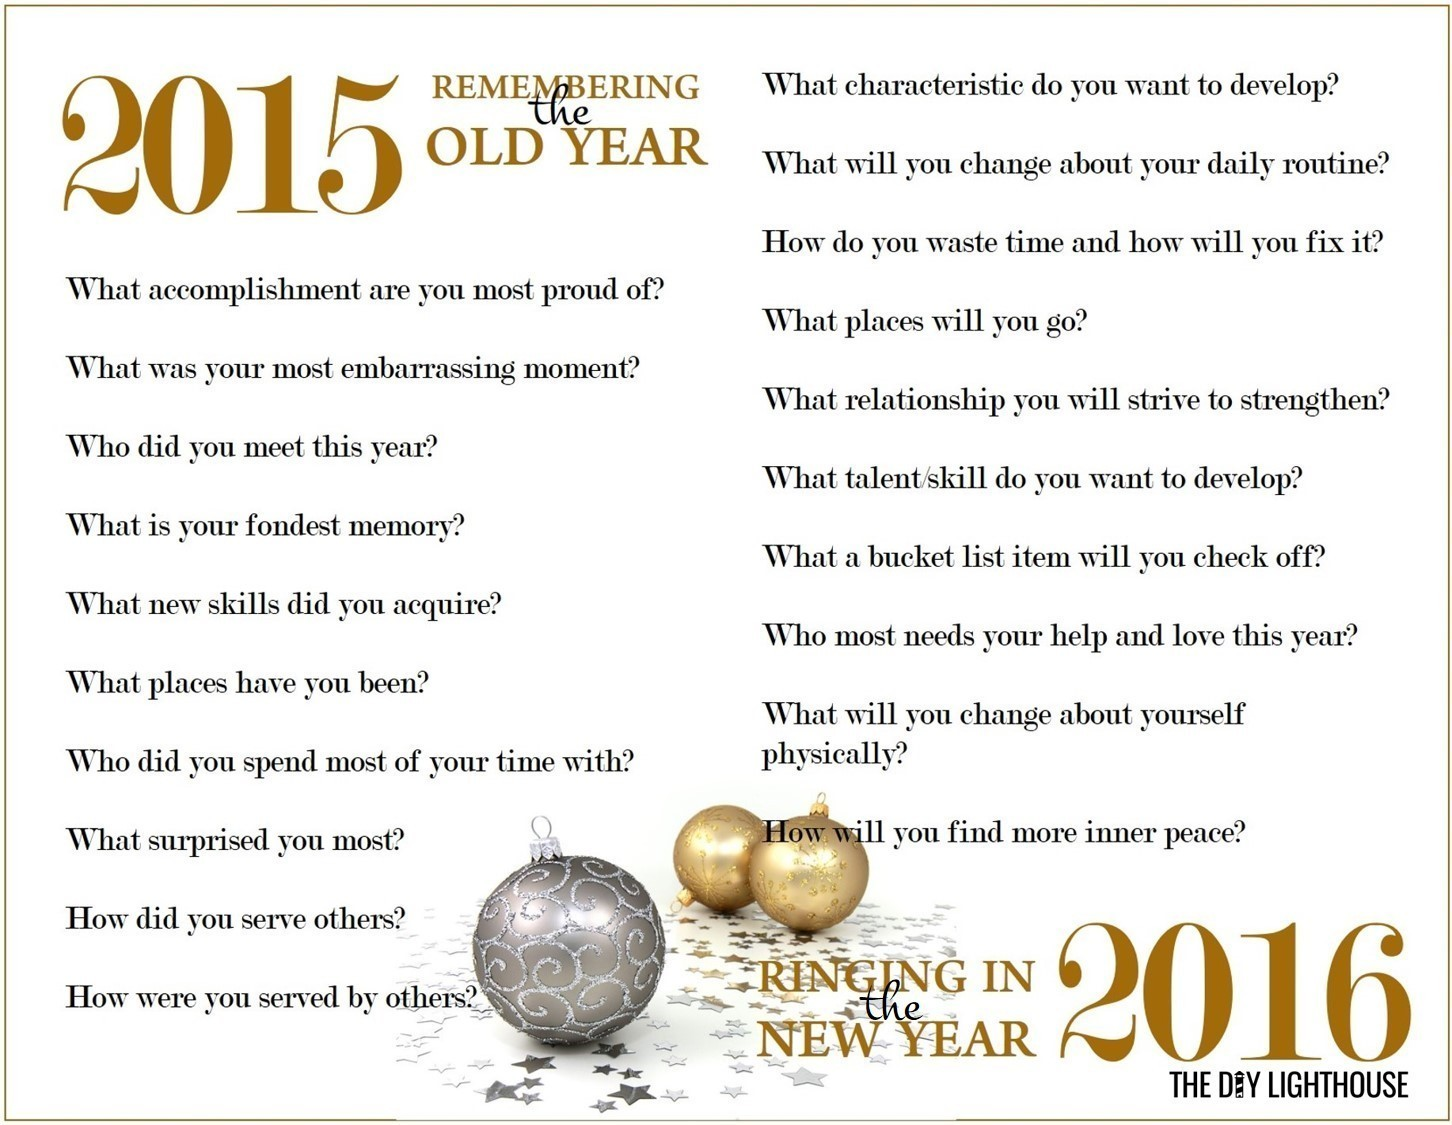 Free Printable: New Year Resolutions Worksheet - The DIY Lighthouse